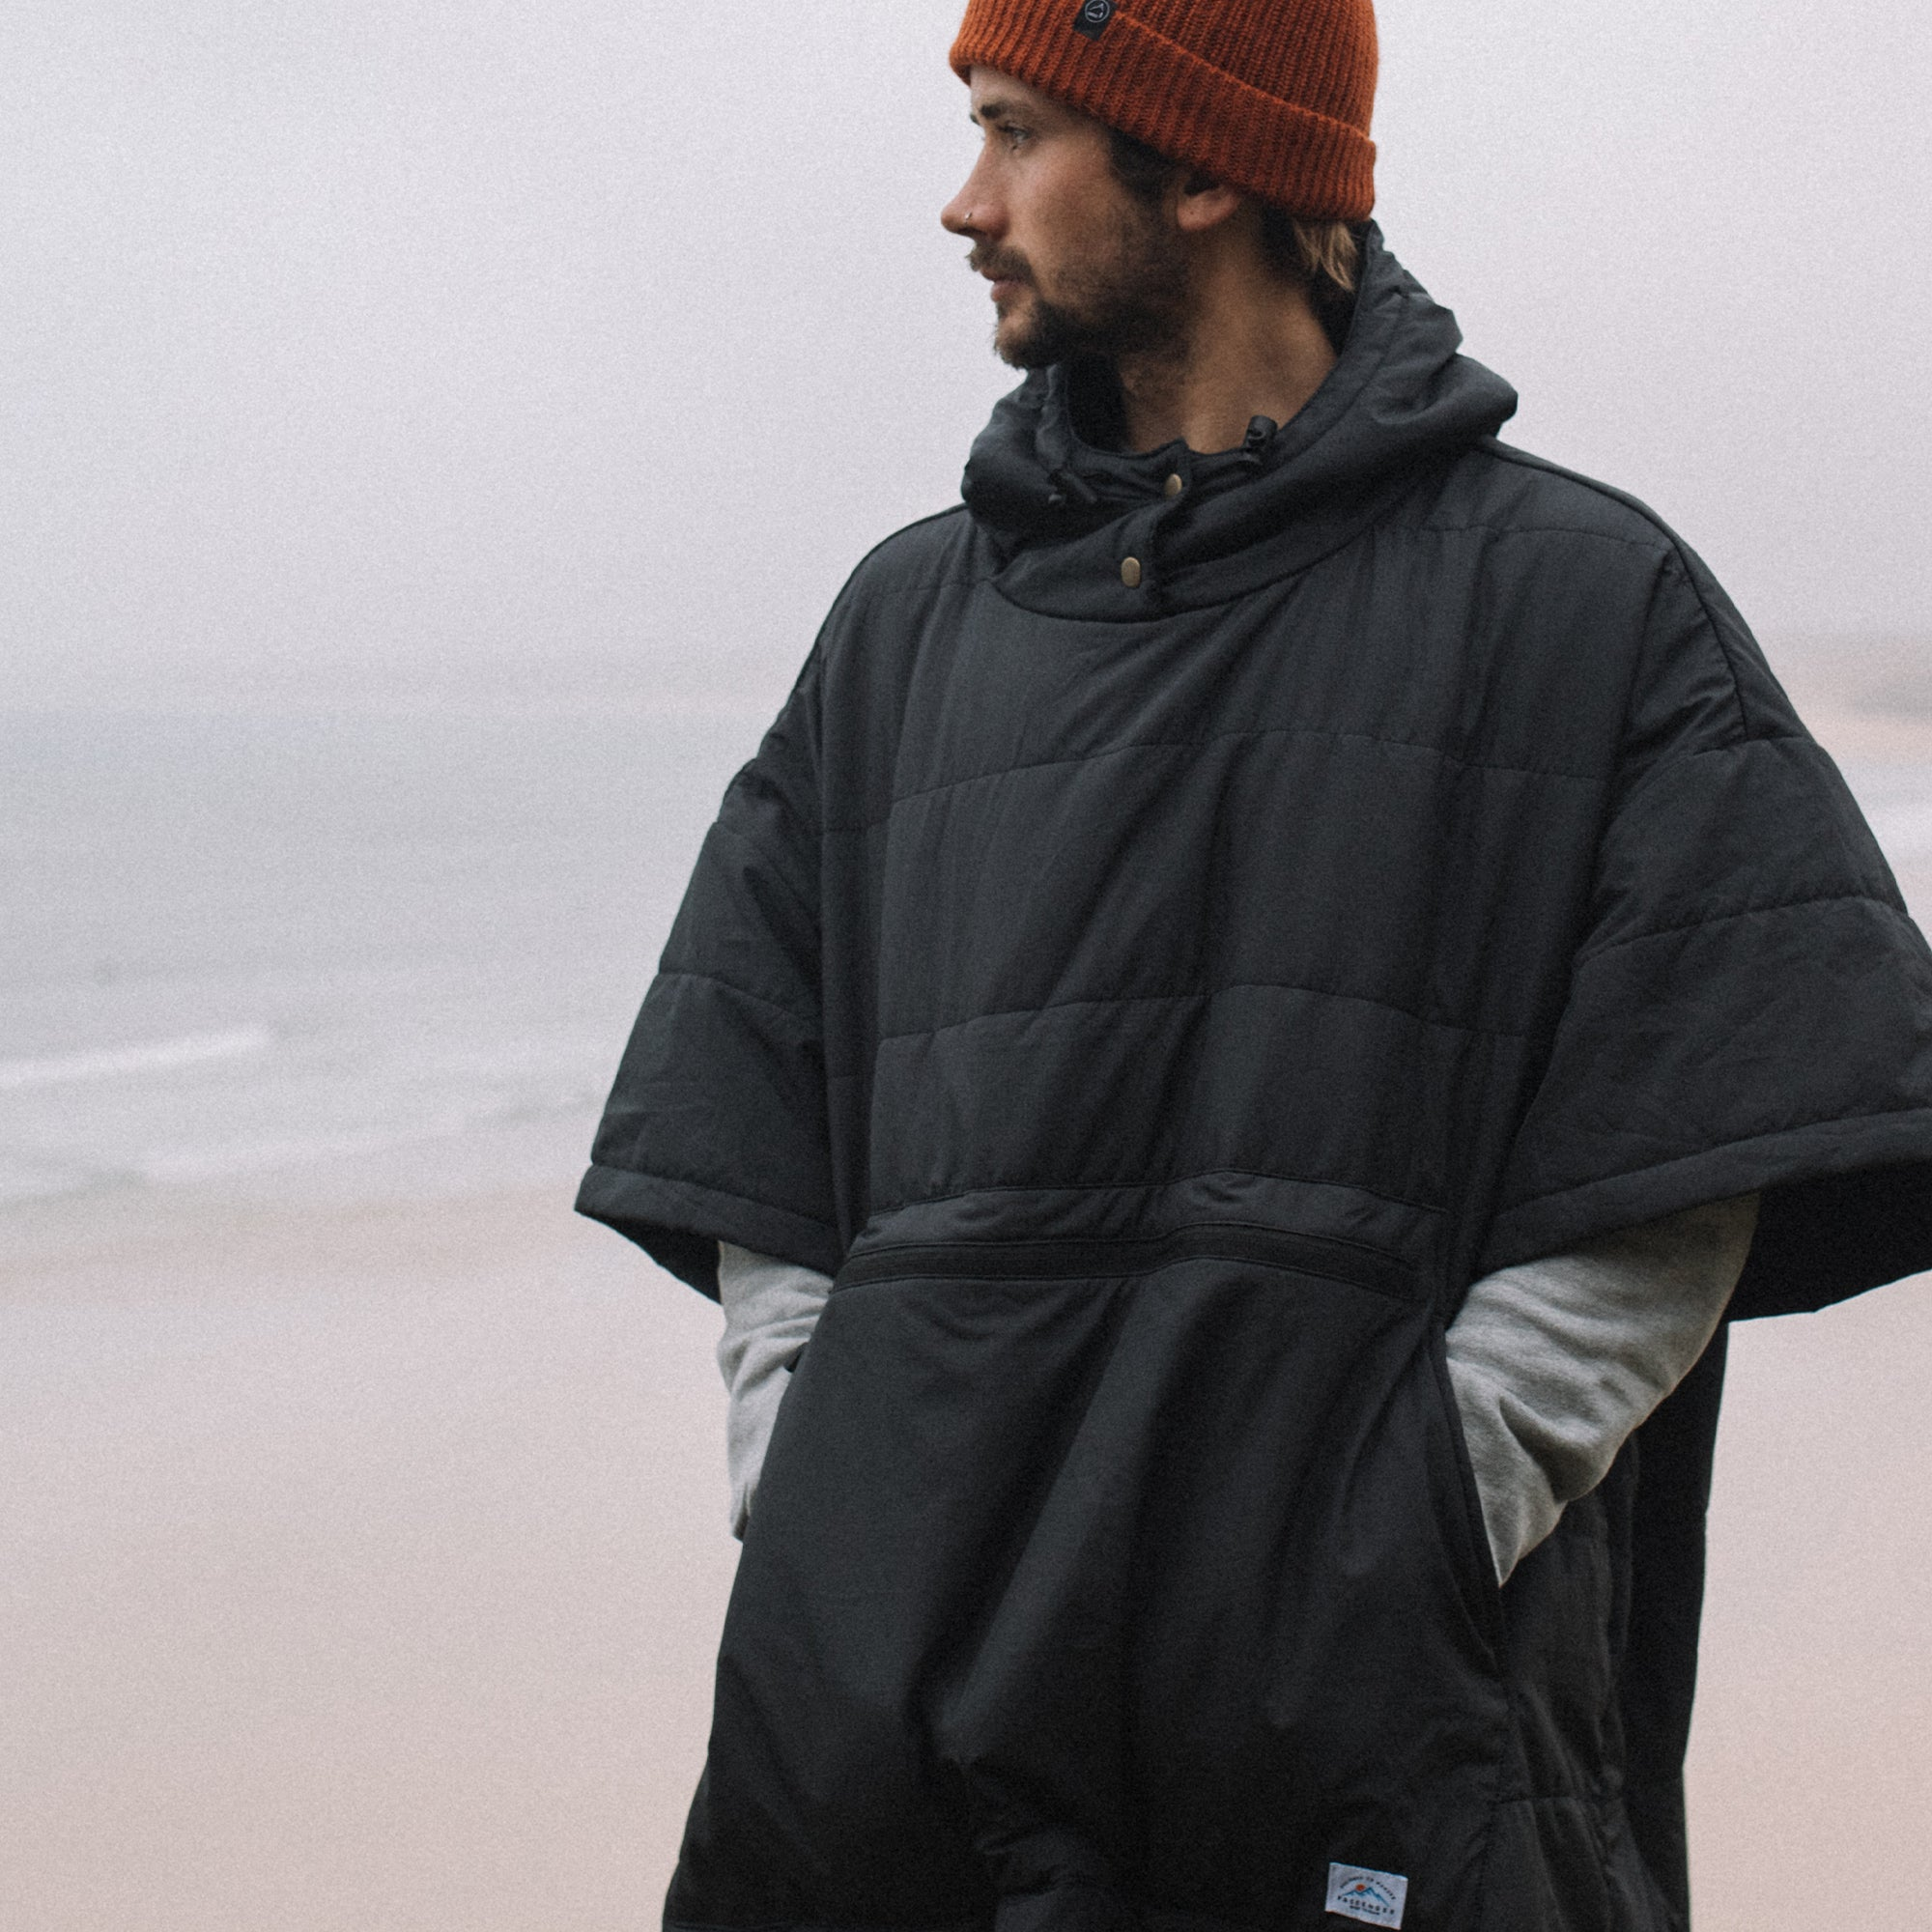 Wilds Towel lined Poncho - Black image 3